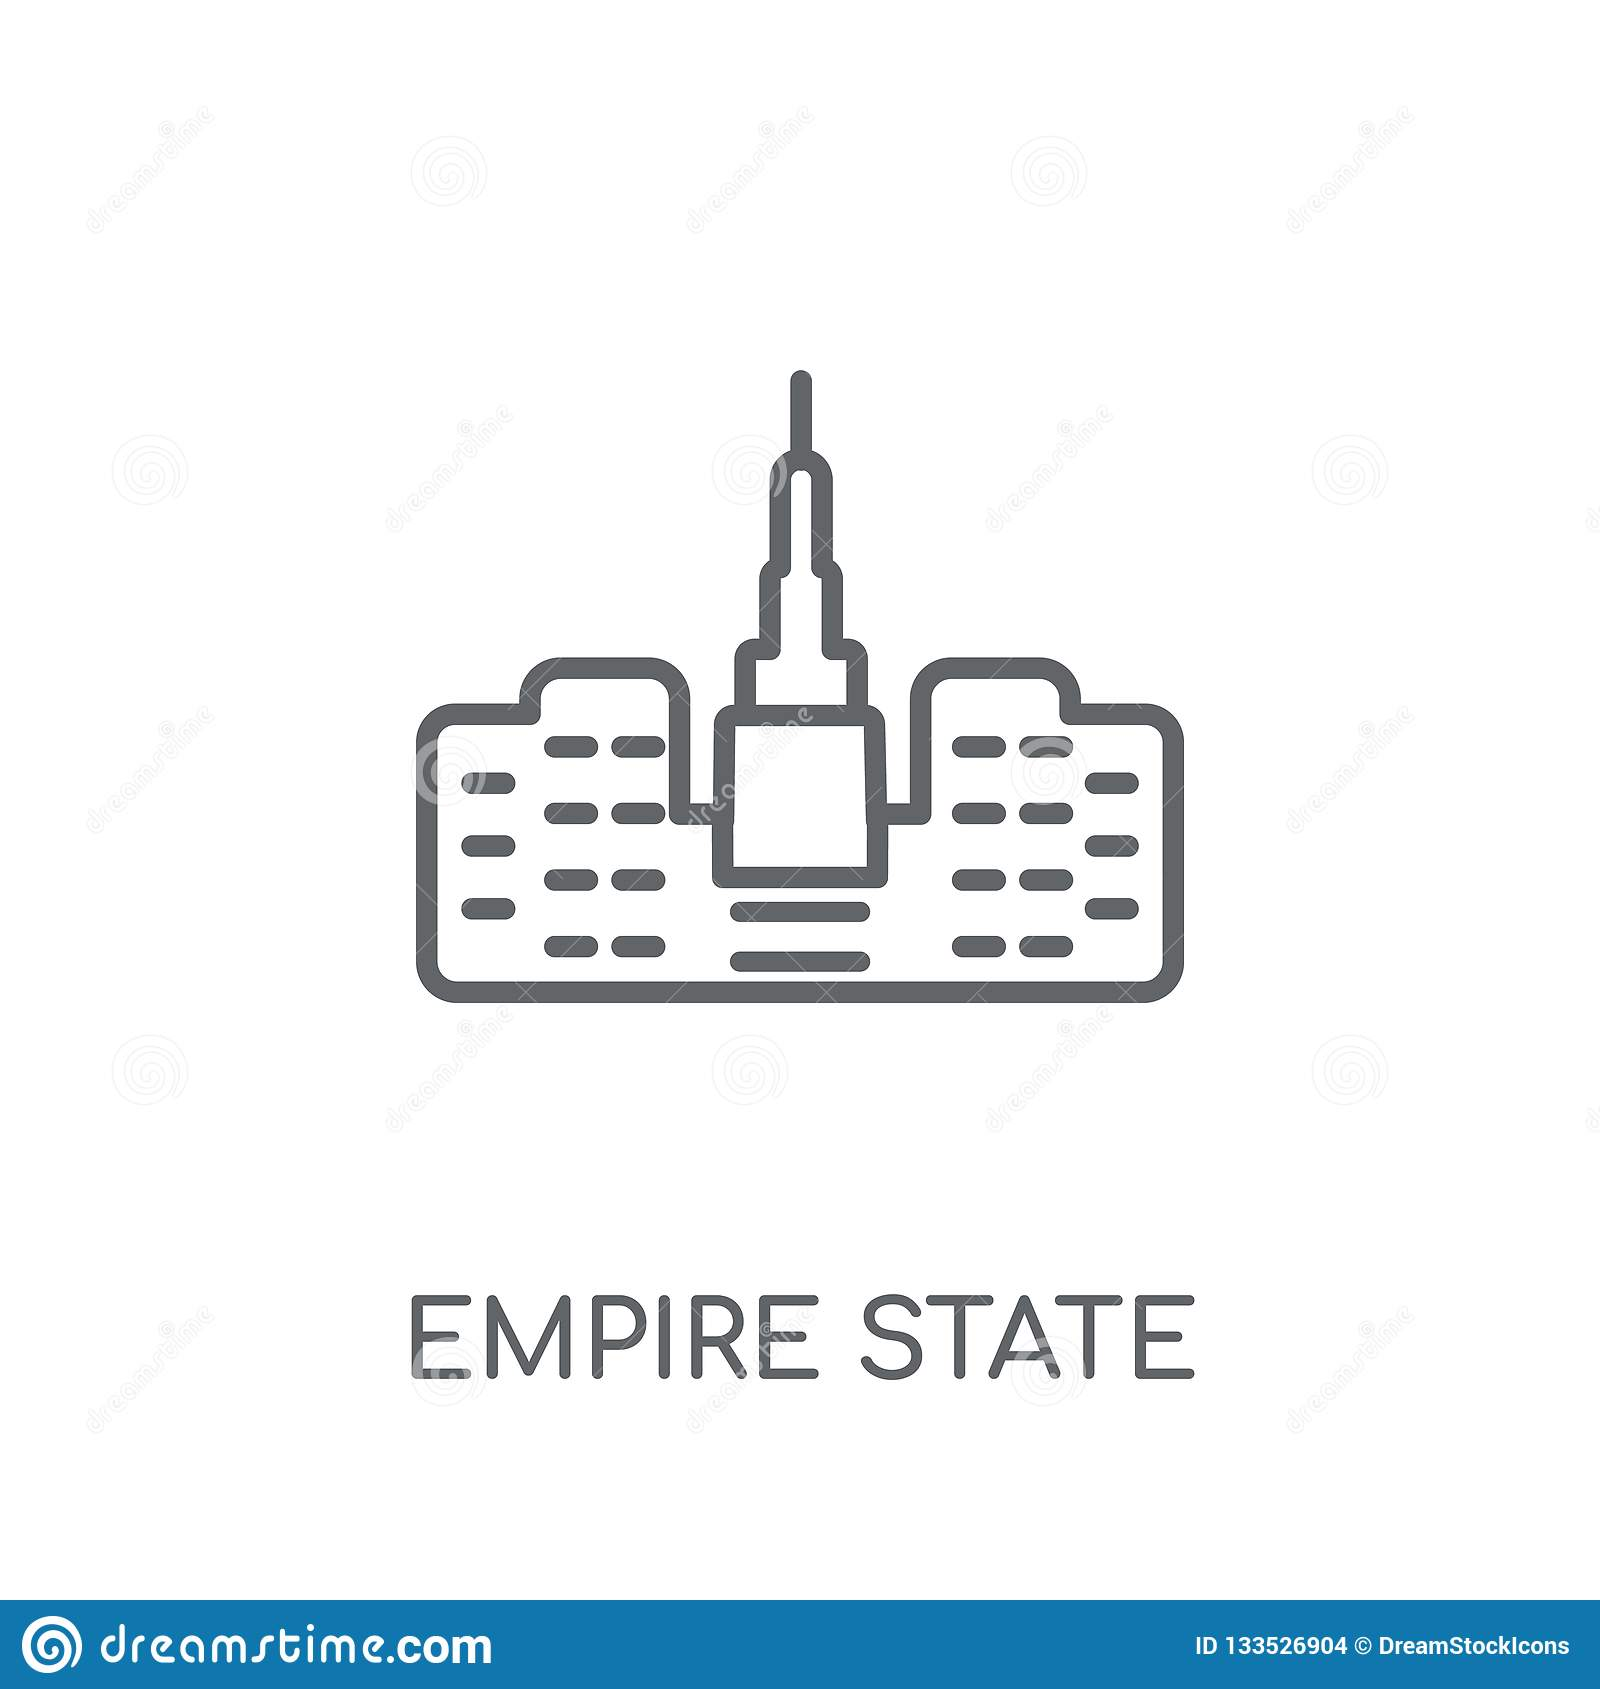 empire state outline